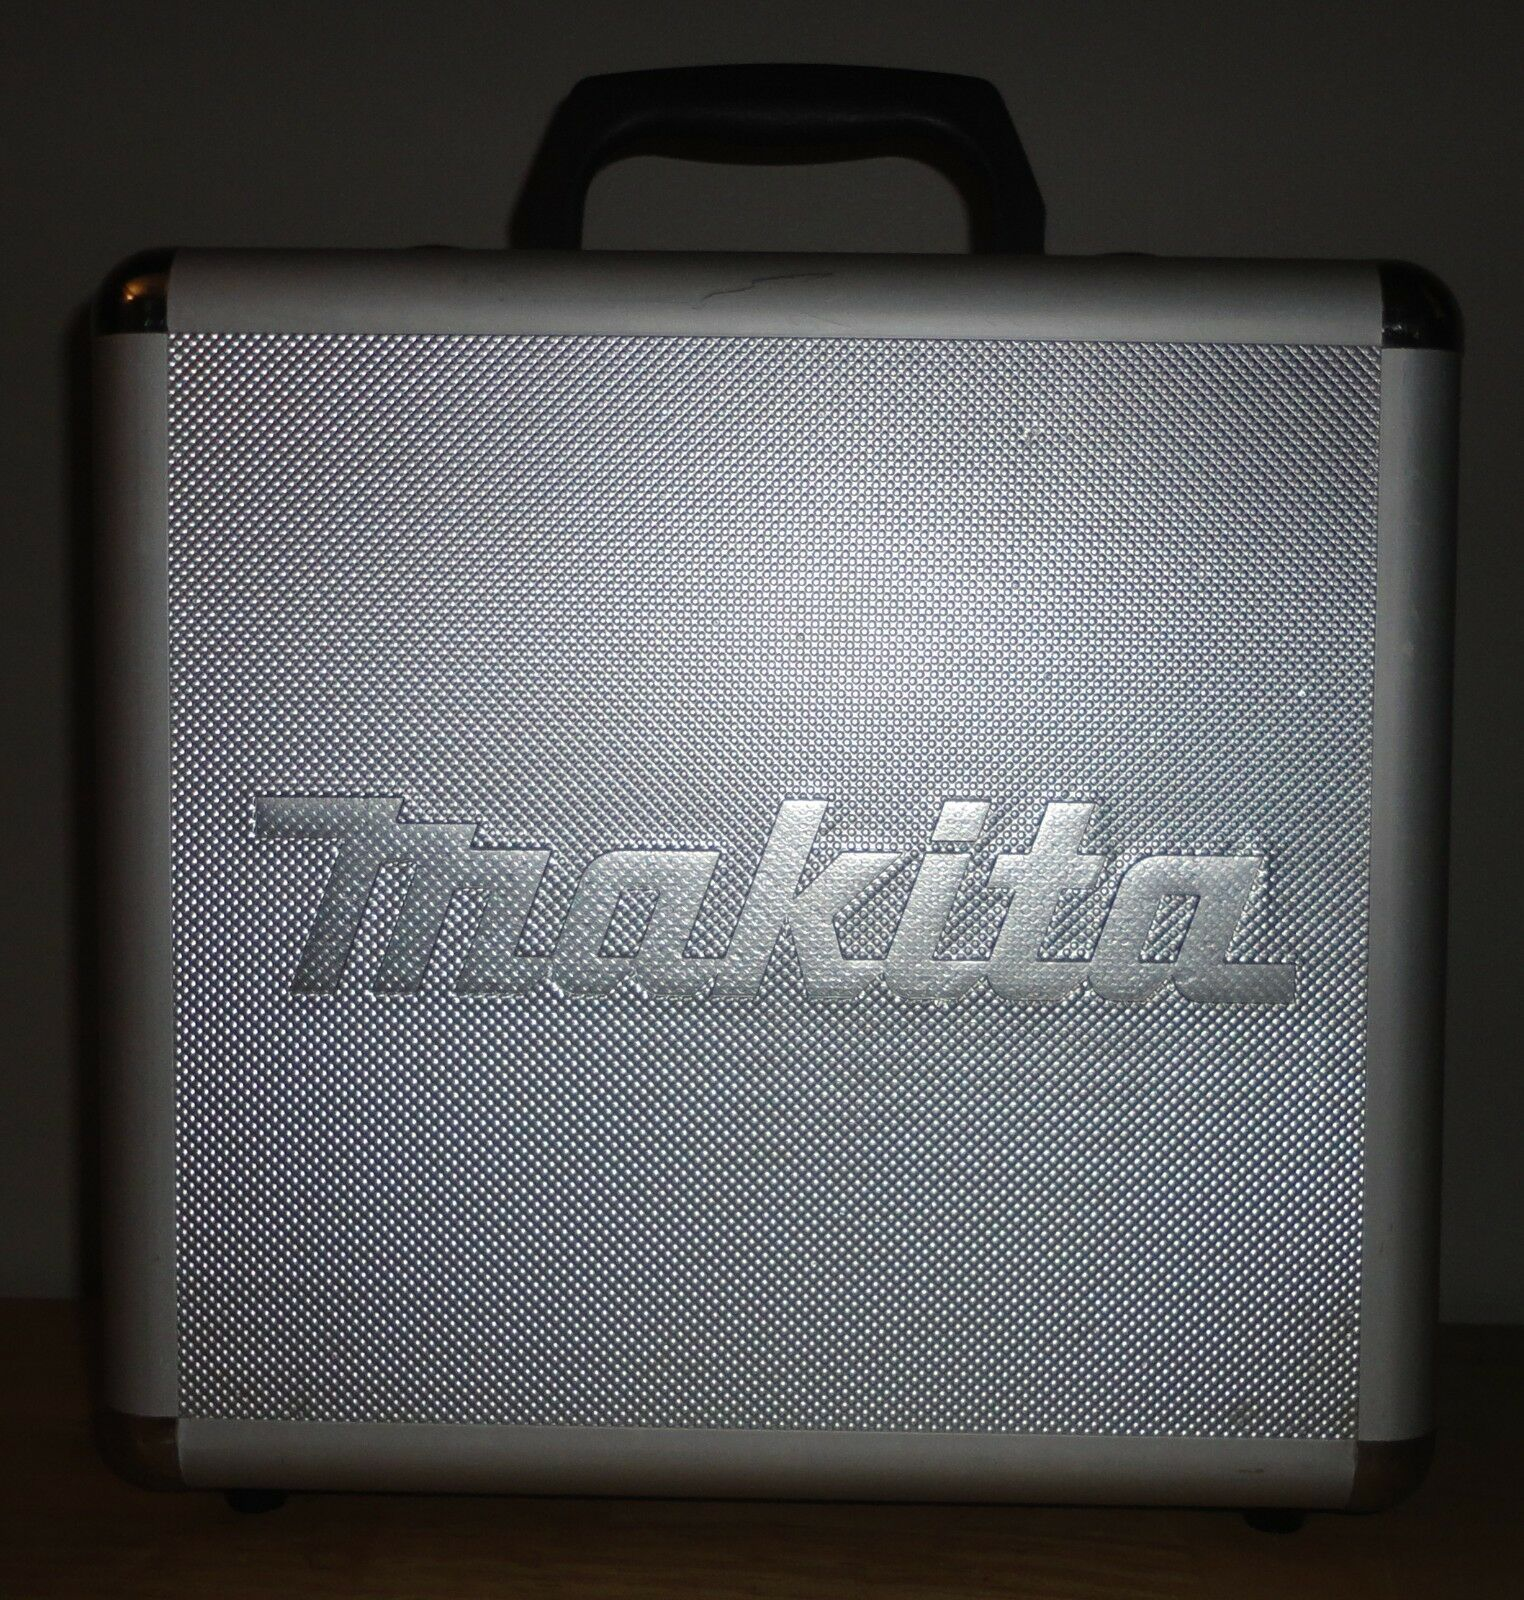 Metal MAKITA Power Tool Tools Storage Case Box -- CASE ONLY FOR REPLACEMENT